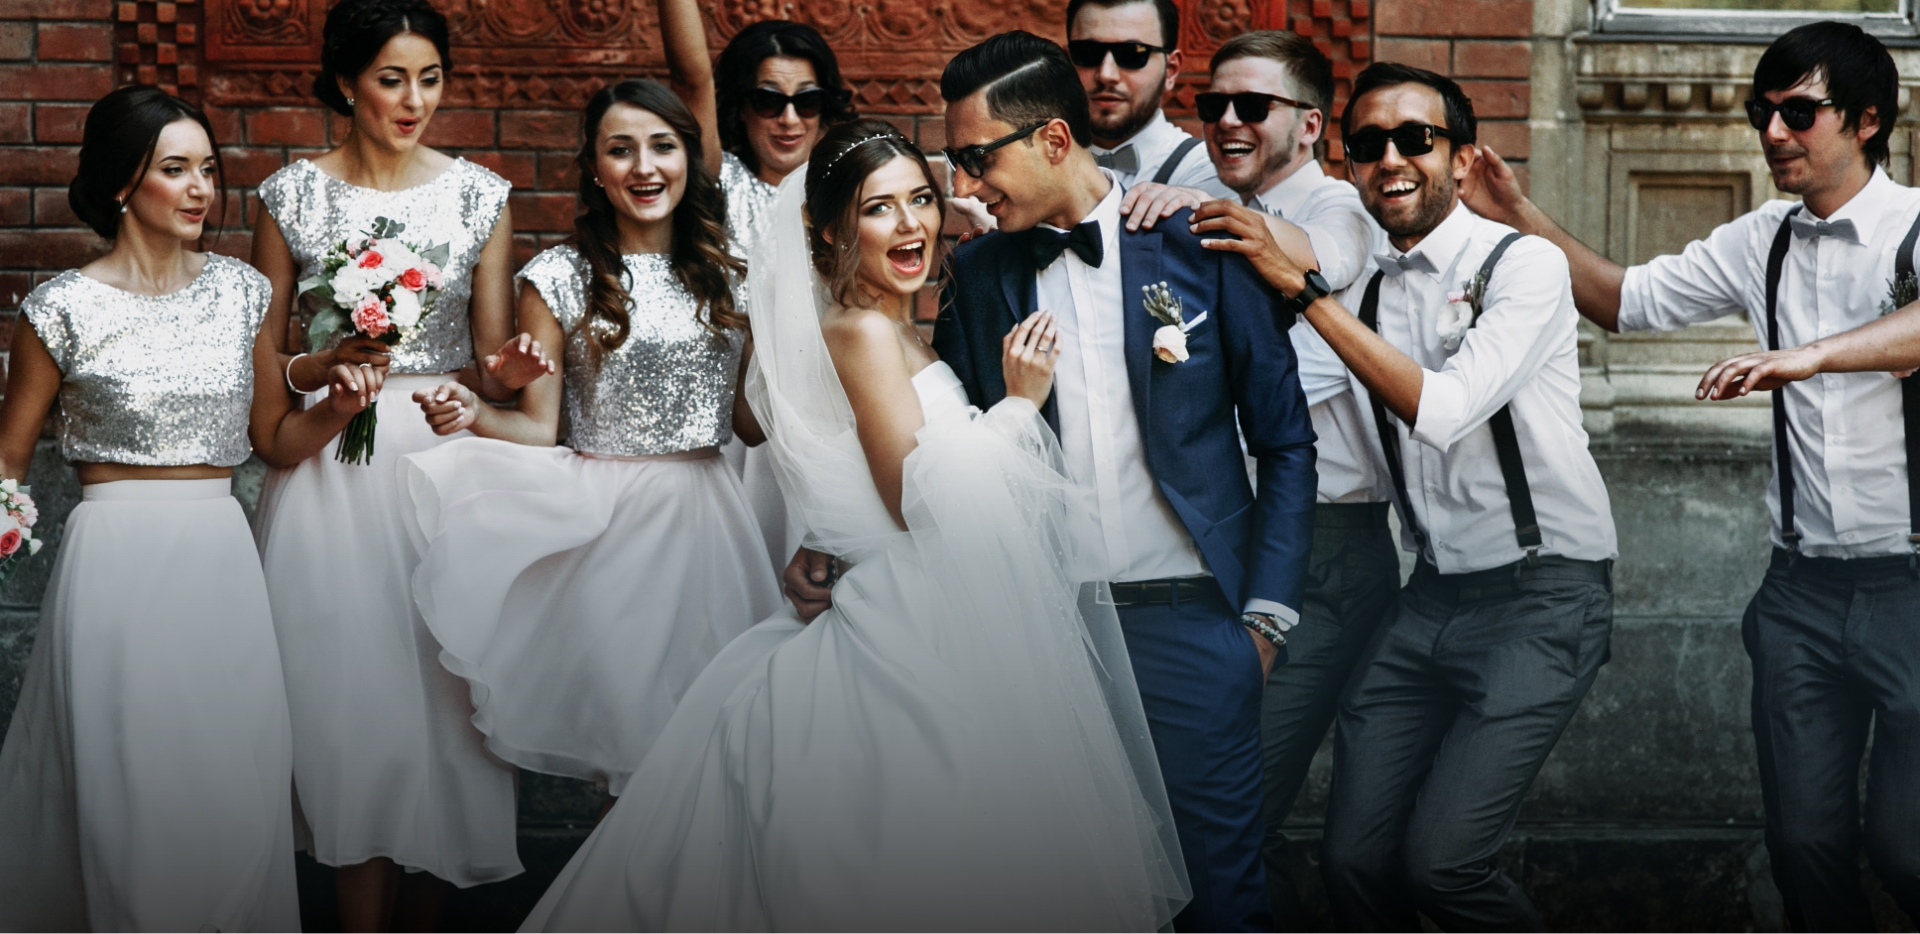 happy bride and groom surrounded by wedding party pose for photo